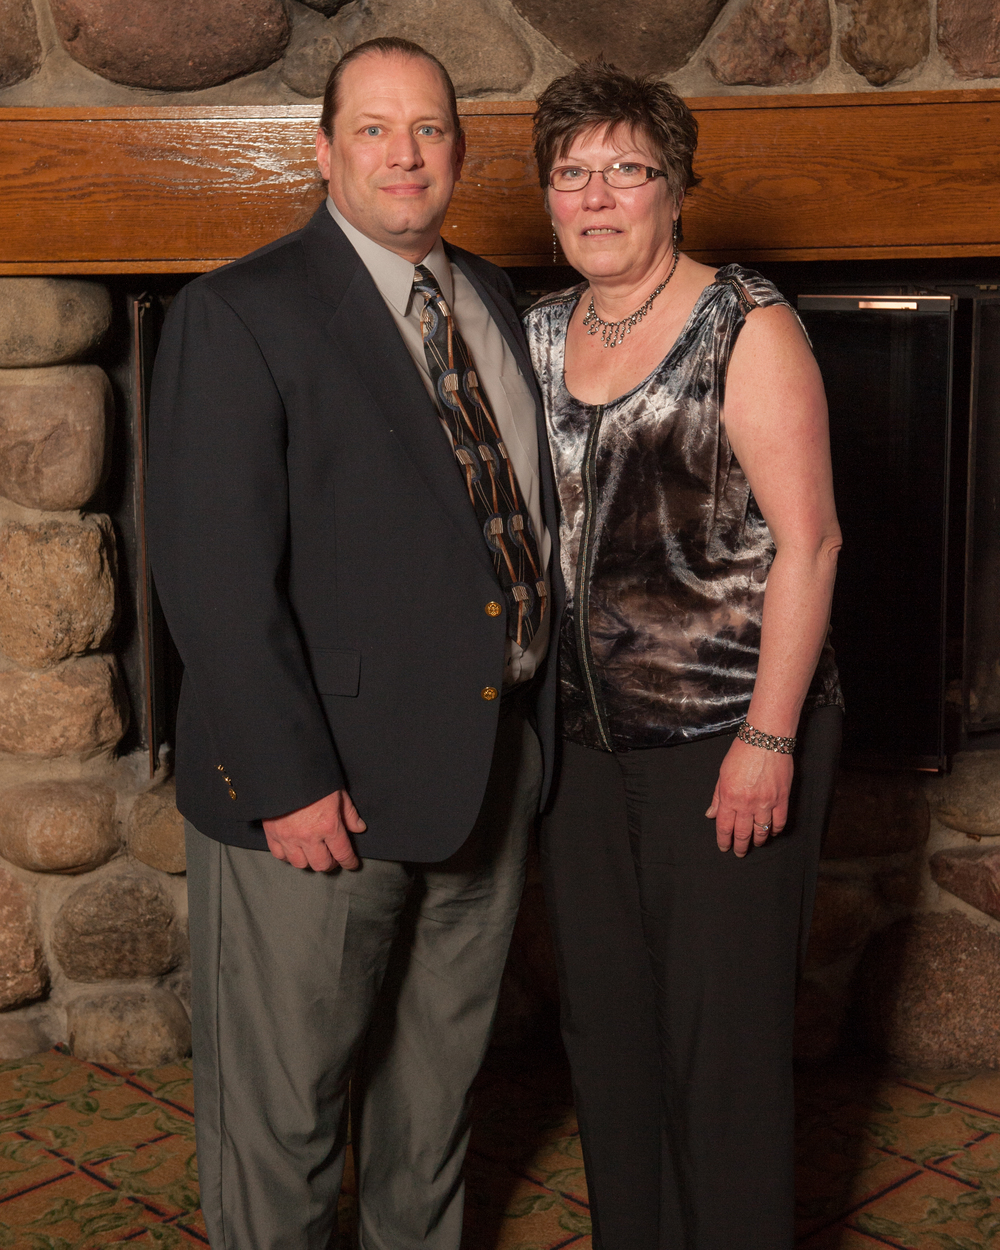 Johnson Wedding (194 of 260).jpg